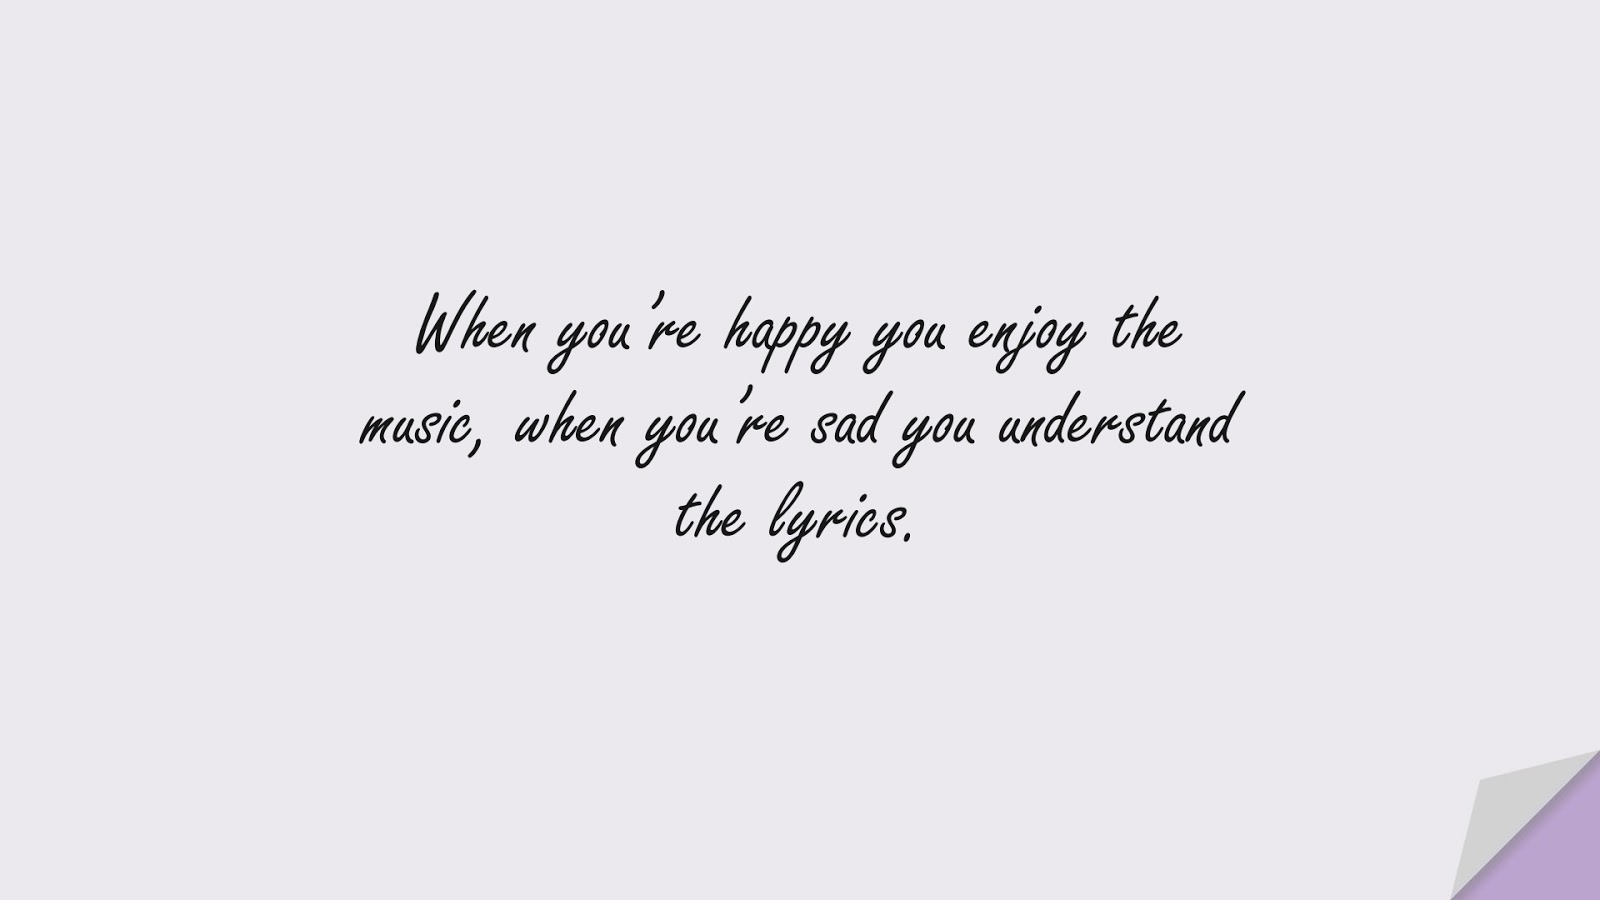 When you're happy you enjoy the music, when you're sad you understand the lyrics.FALSE